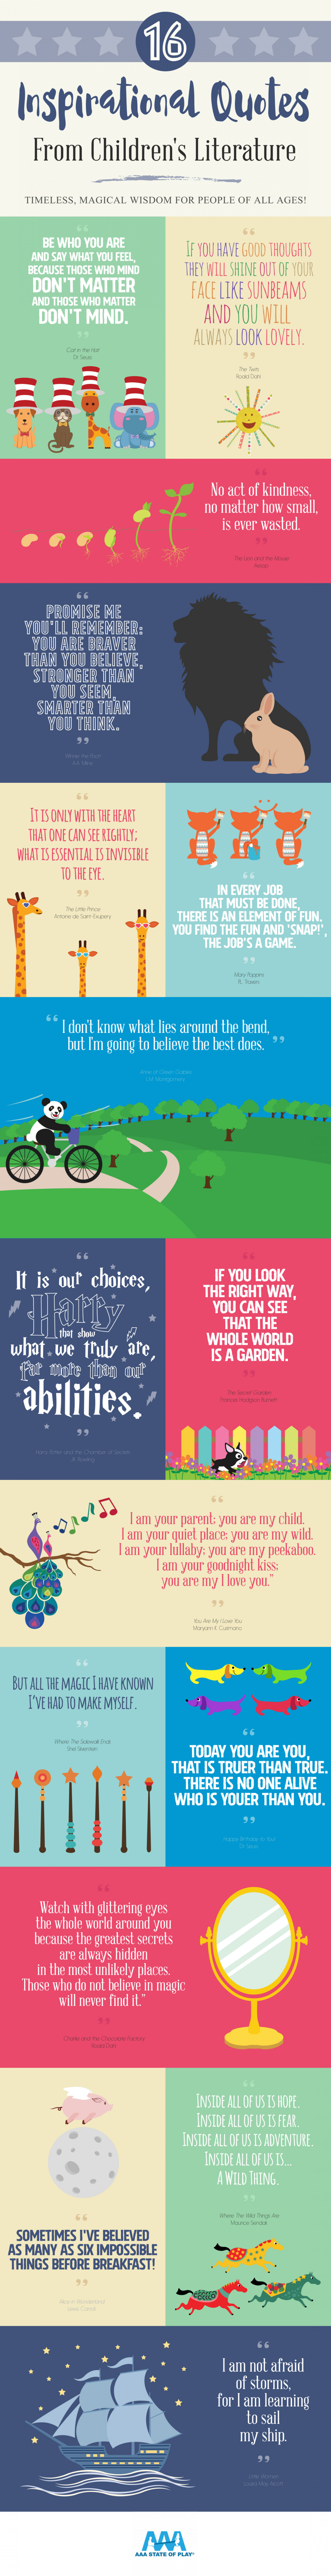 16 Inspirational Quotes From Children's Literature Infographic